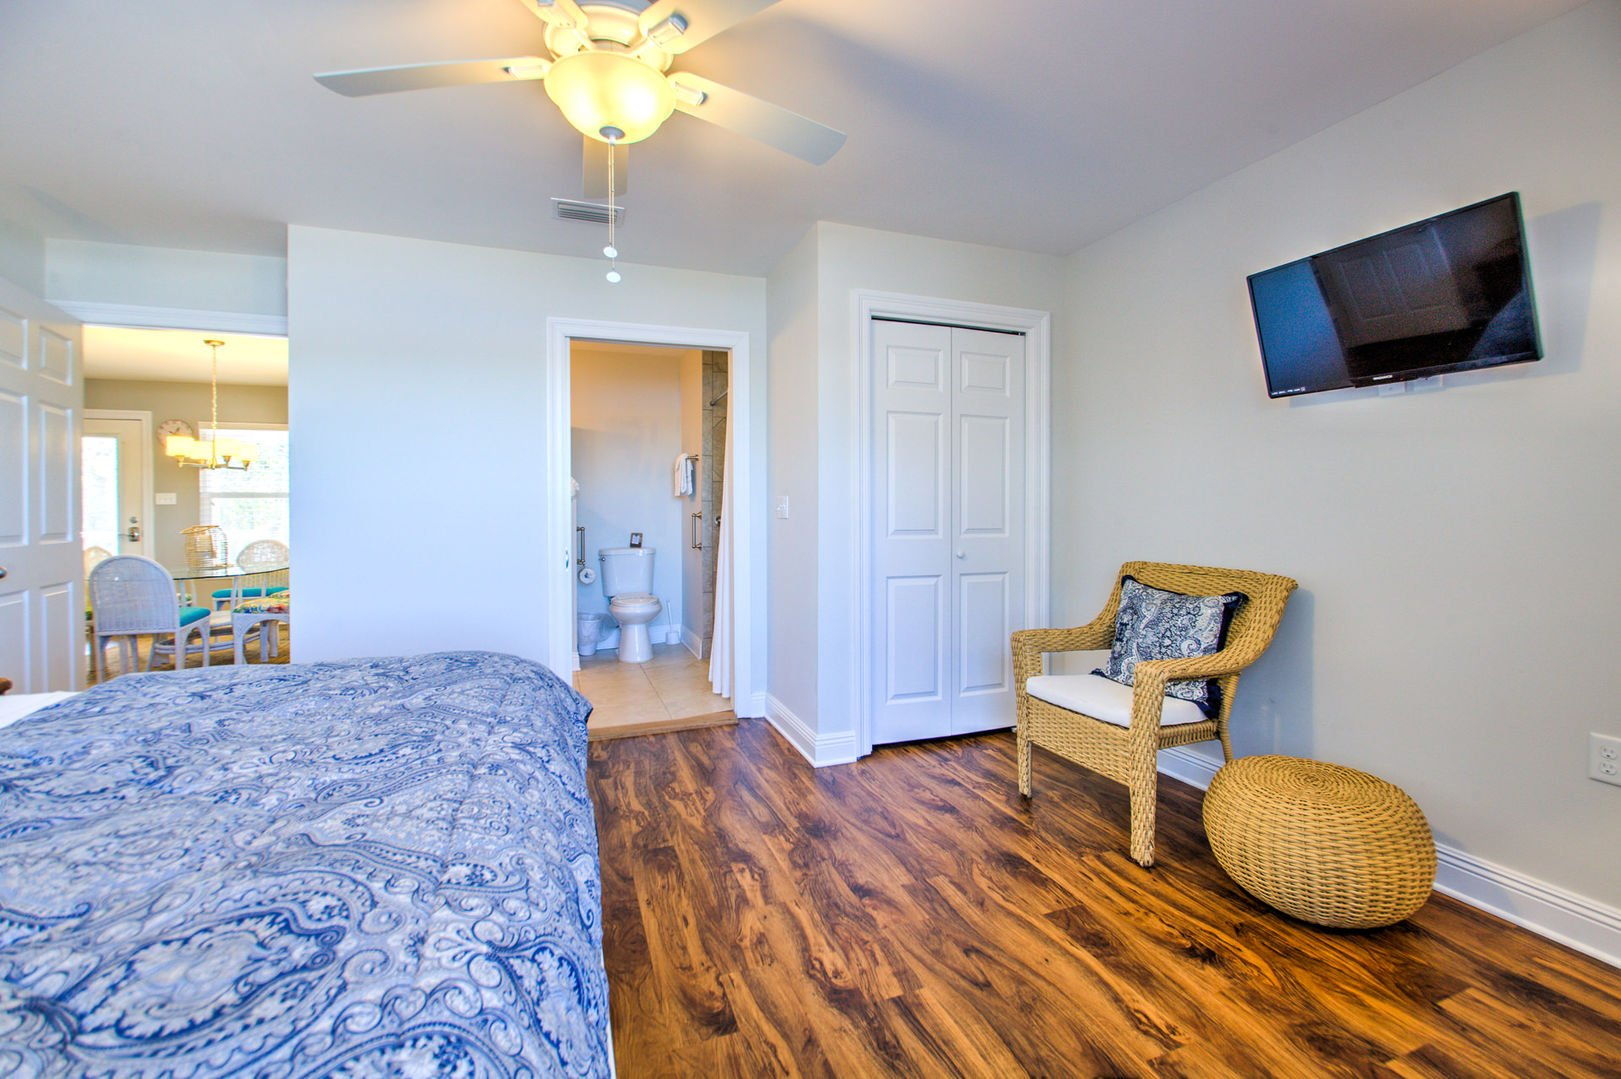 Vacation Home in Orange Beach Features a Bright Master Bedroom.